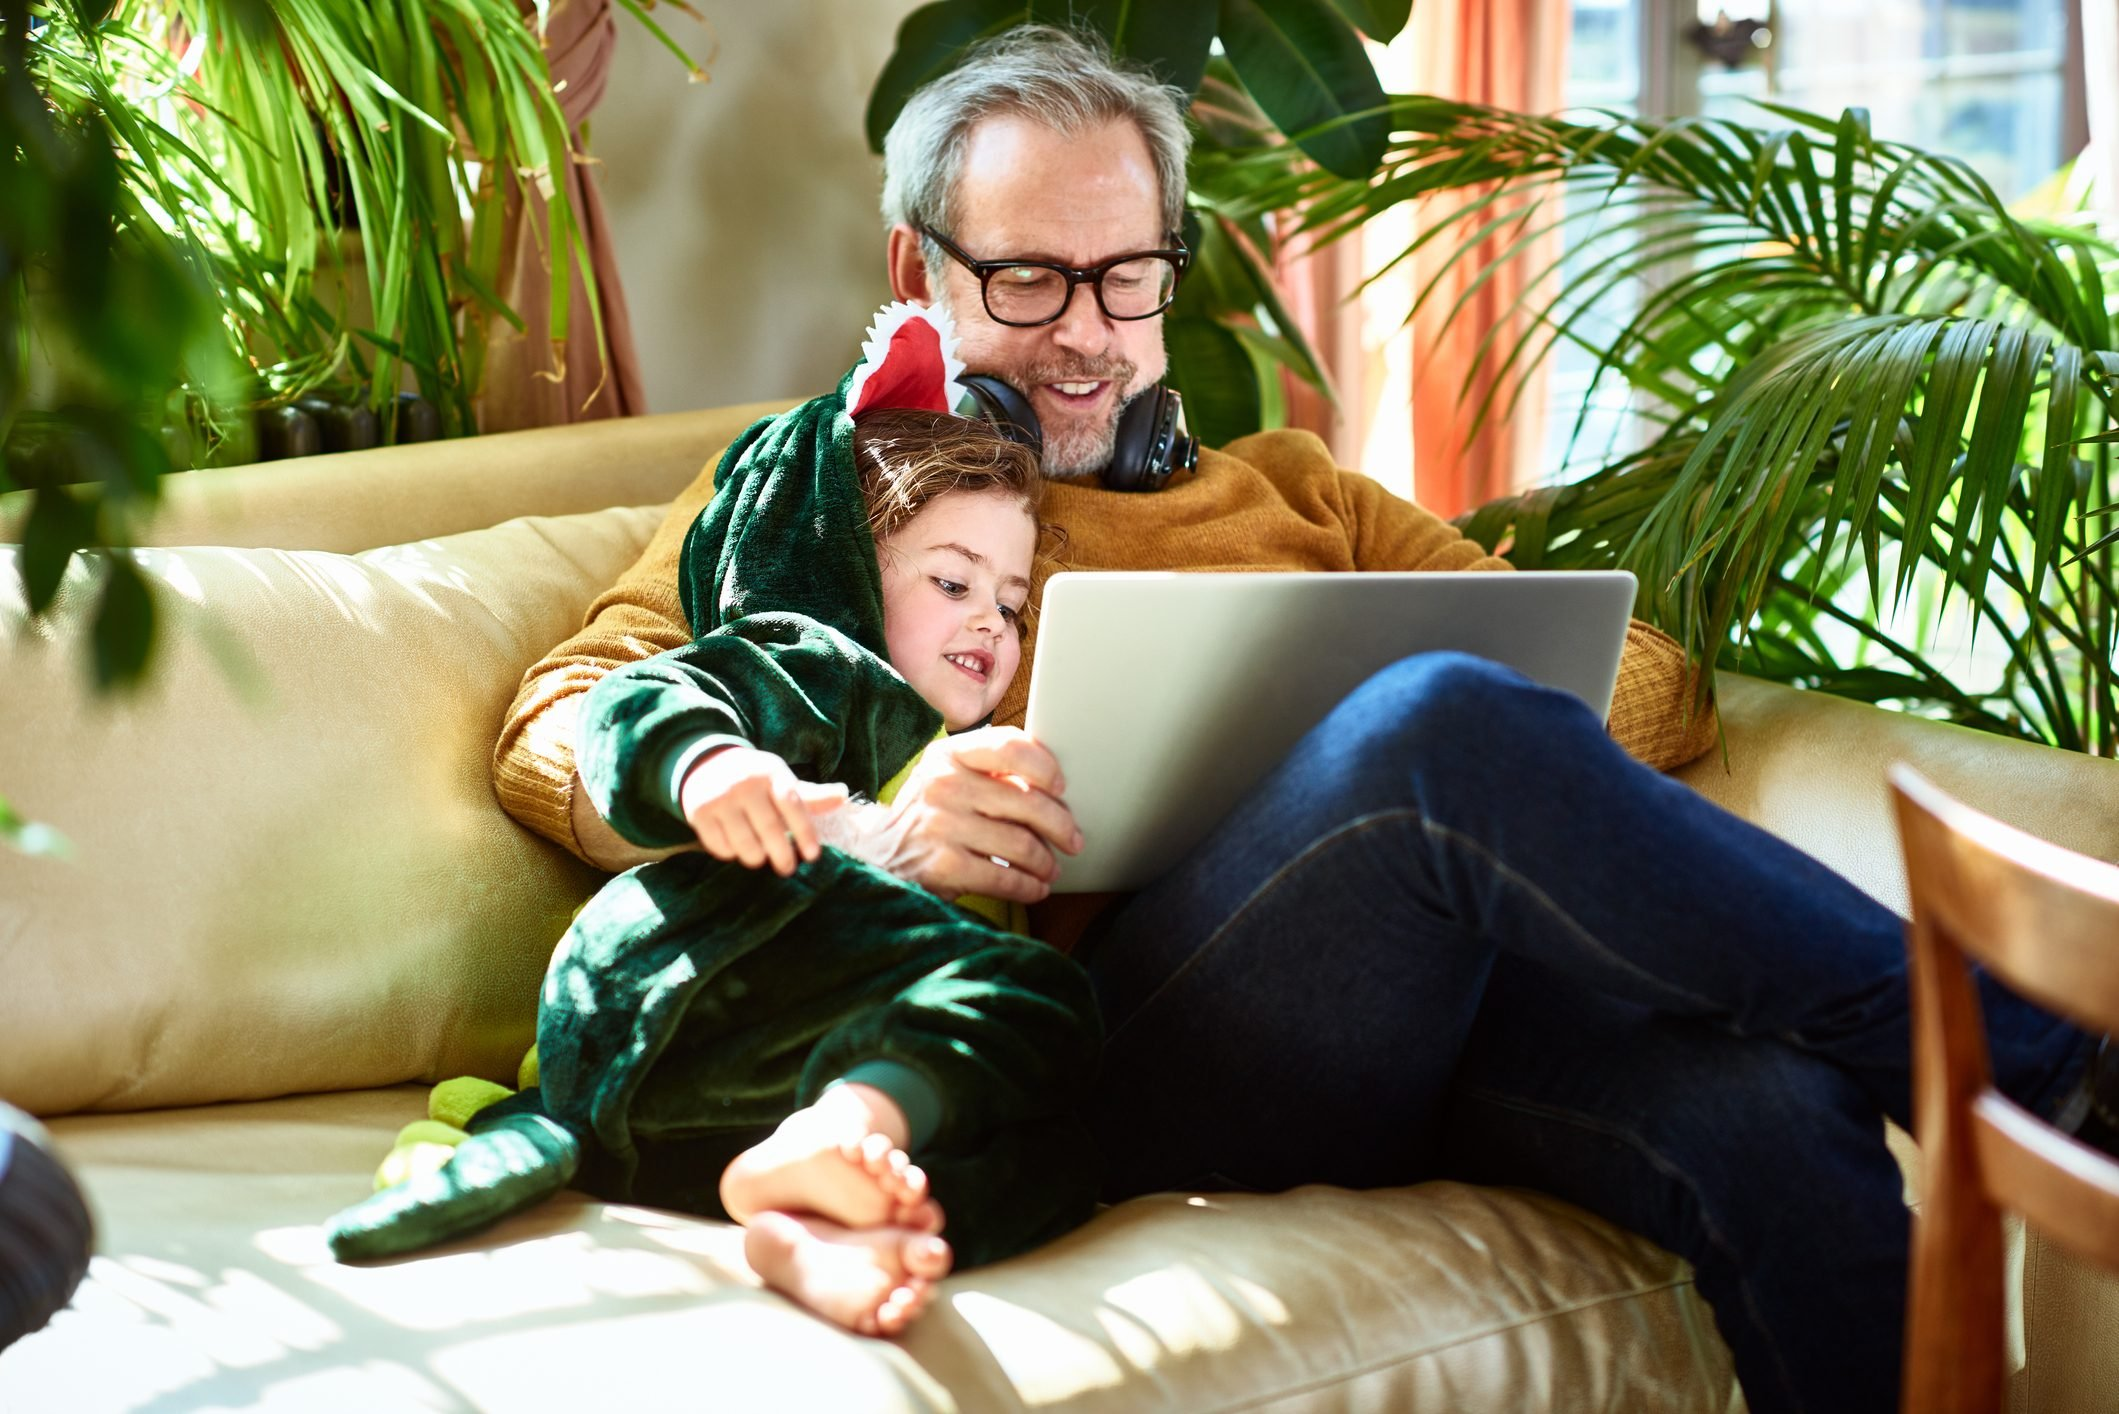 Uncle playing game on laptop with girl in dinosaur outfit